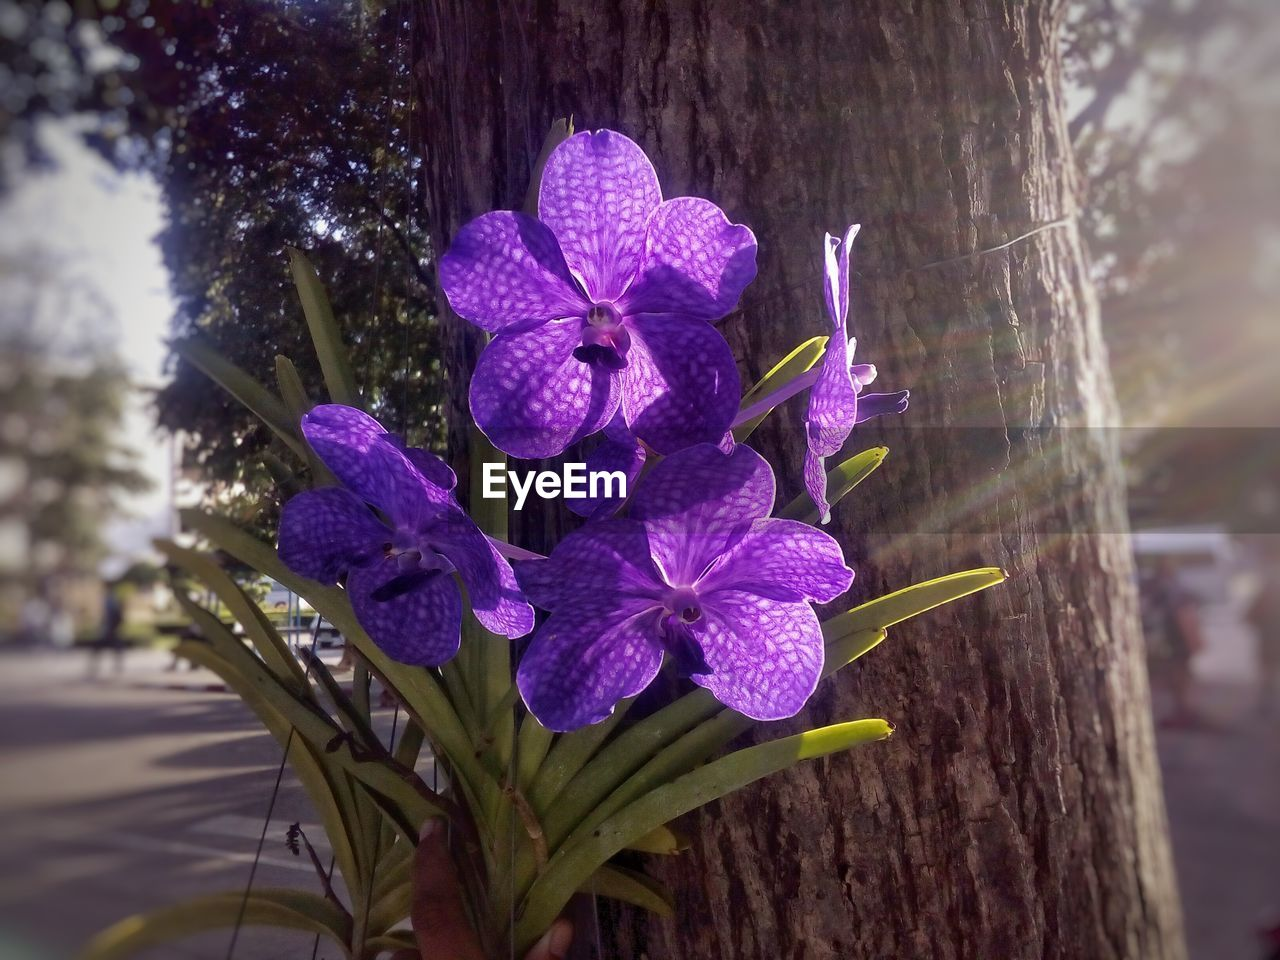 flower, beauty in nature, fragility, growth, purple, nature, petal, outdoors, day, freshness, focus on foreground, close-up, no people, flower head, blooming, tree